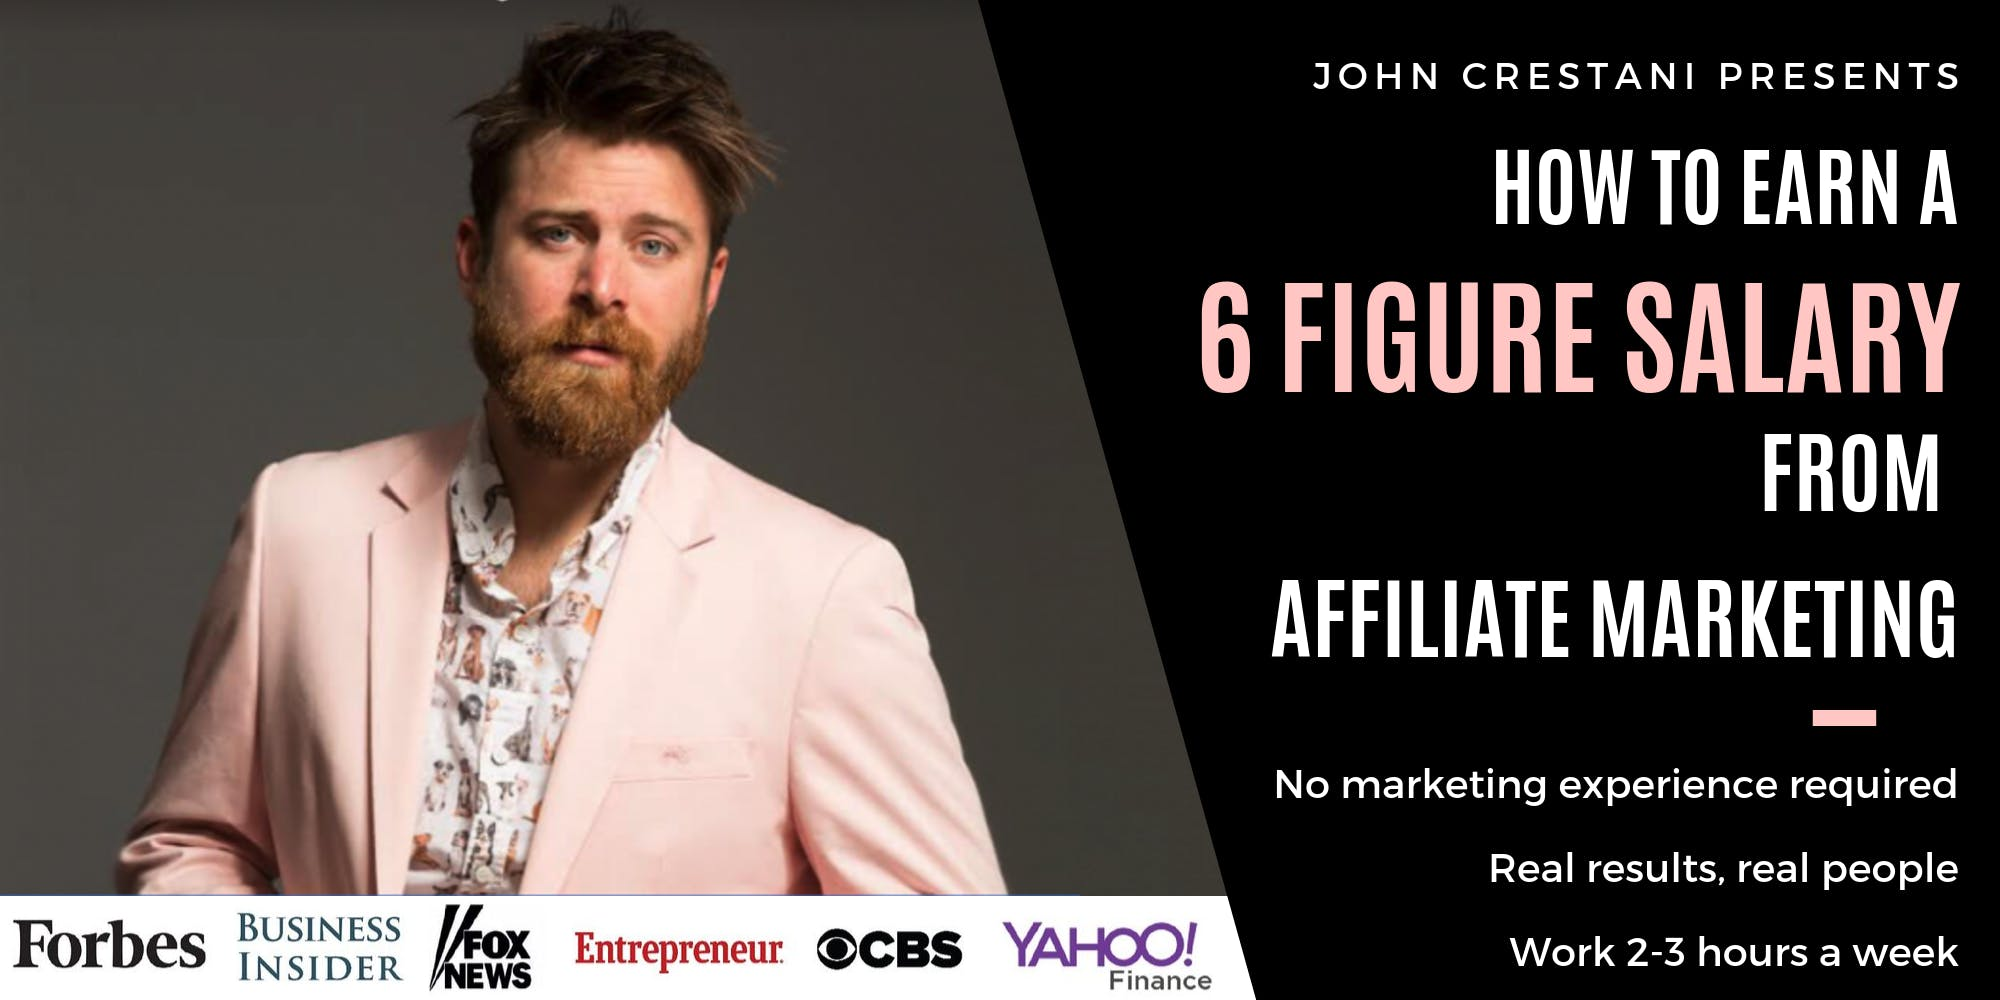 FREE Event - How to Earn 6 Figures with Affiliate Marketing, 2-3 Hours Work p/w [WEBINAR]